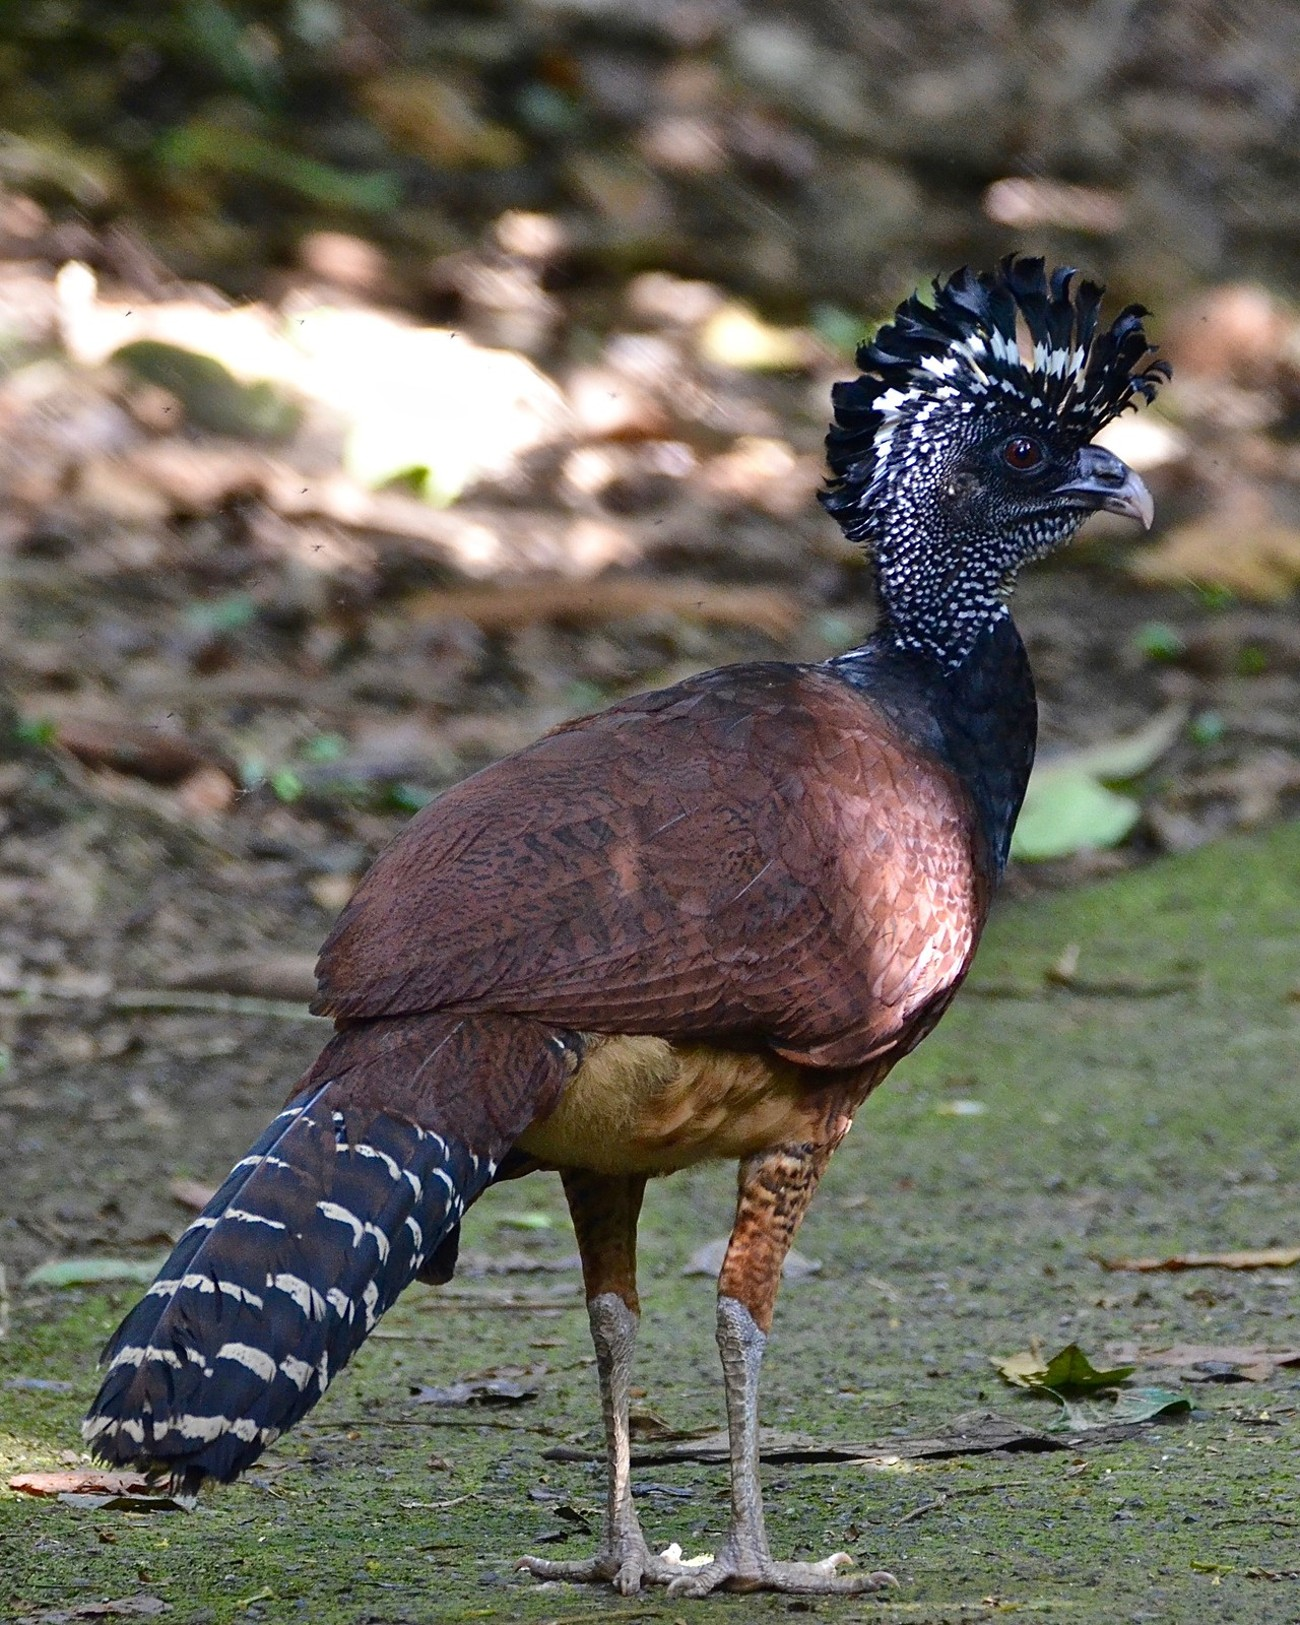 The great curassow (Crax rubra) is a 36-inch tall, hearty bird. All great curassows have a peak of forward-curling feathers on their heads, and long tails. The base of the Male Great Curassow's bill is yellow with a round bulge. The coloring of the females varies; they can be black or chestnut-colored with black or white bars and their heads and crest may be striped with black and white. The males are a lustrous blue or black, and have white bellies. They have long lifespans (up to 24 years!) and a low rate of reproduction.  While the range of the great curassow extends from southern Mexico to western Ecuador, their habitat is usually limited to national parks and reserves.  This photo was taken at the Organization for Tropical Studies  La Selva Biological Station in Costa Rica.